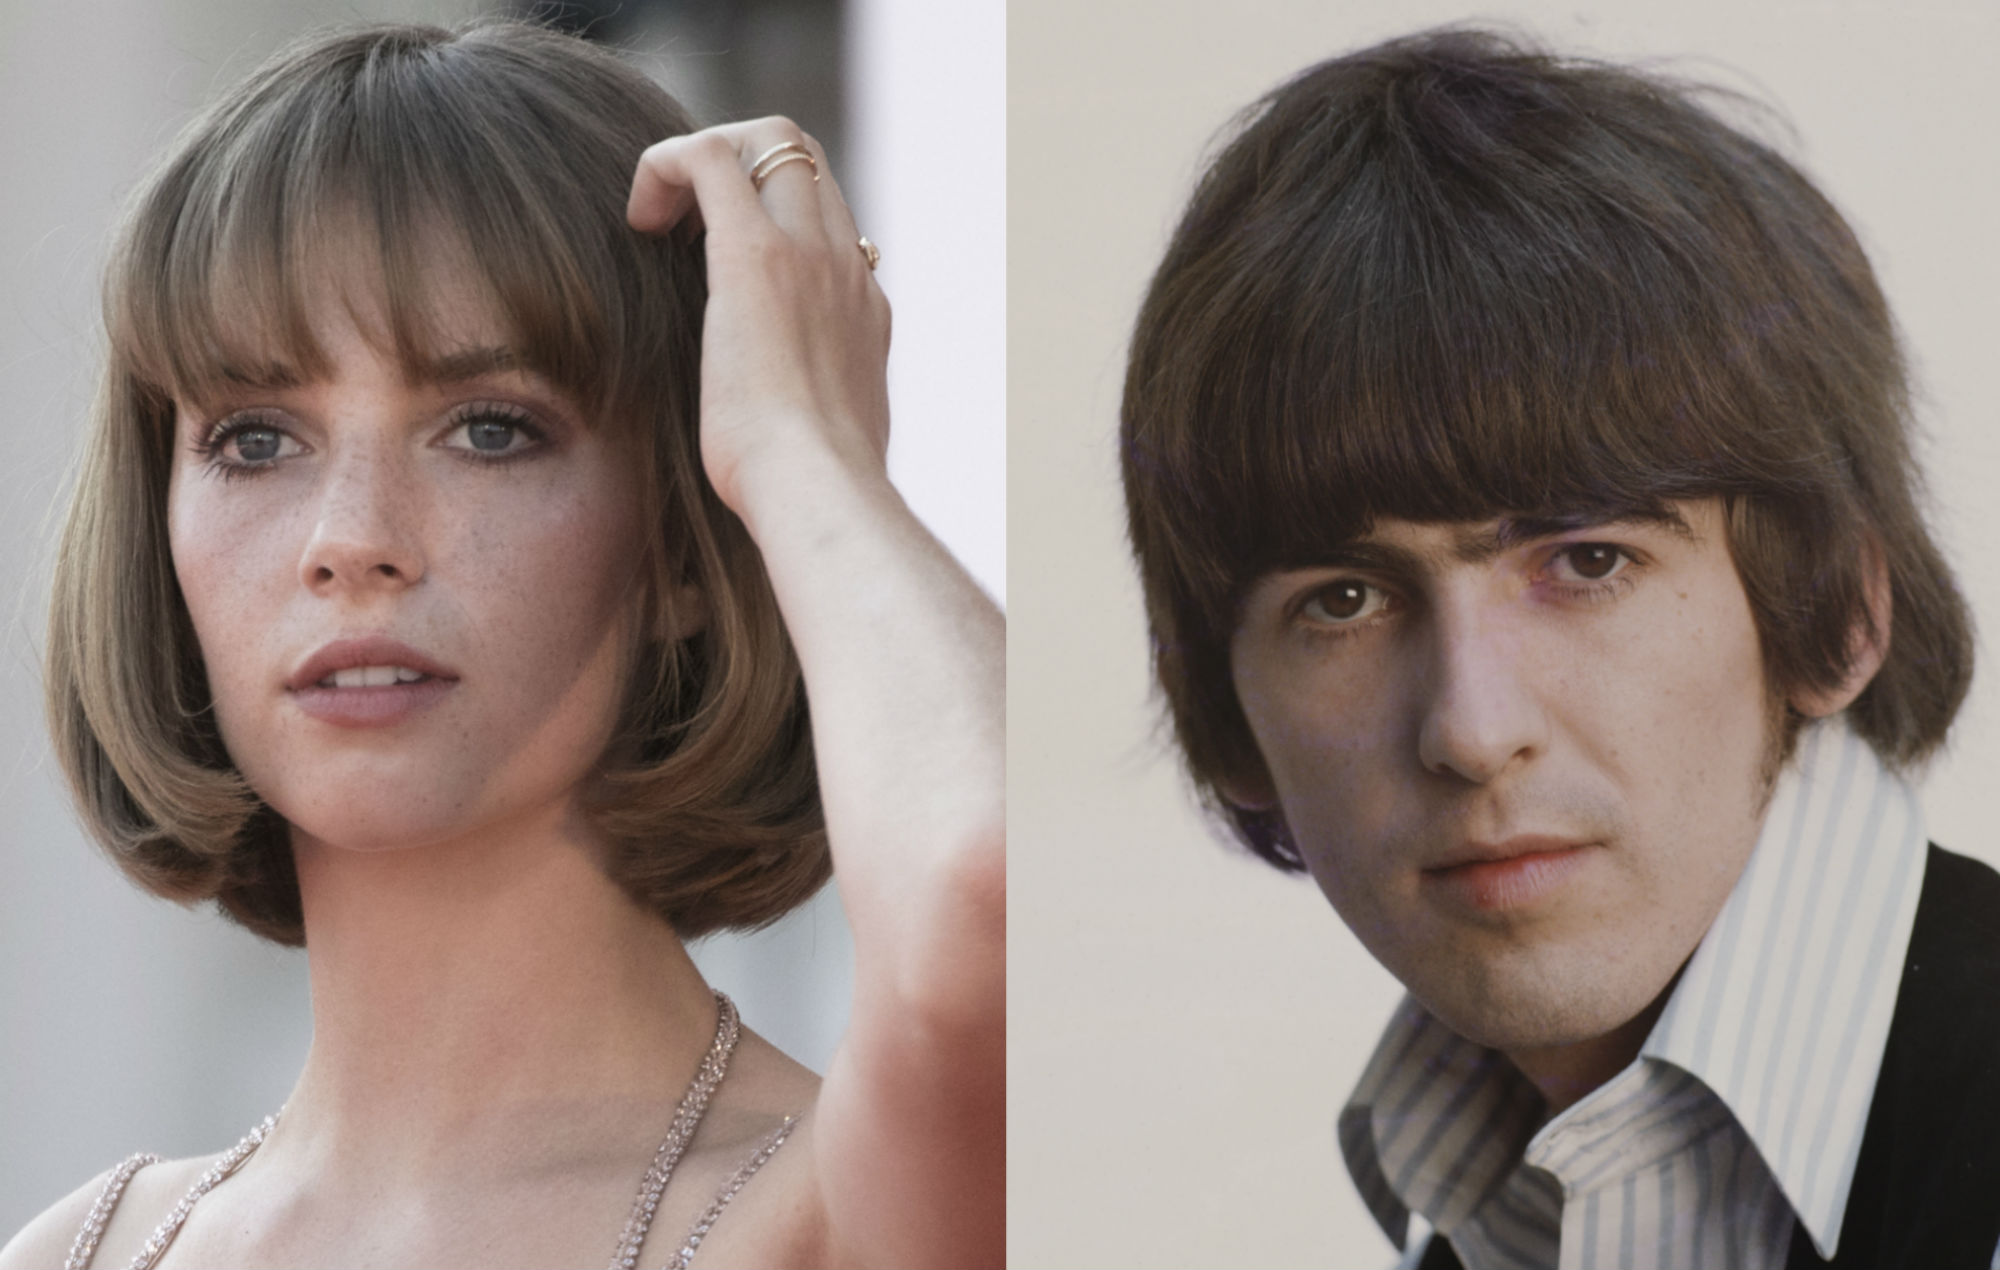 Maya Hawke to star in 'Revolver' with Ethan Hawke as a teen lovesick for George Harrison